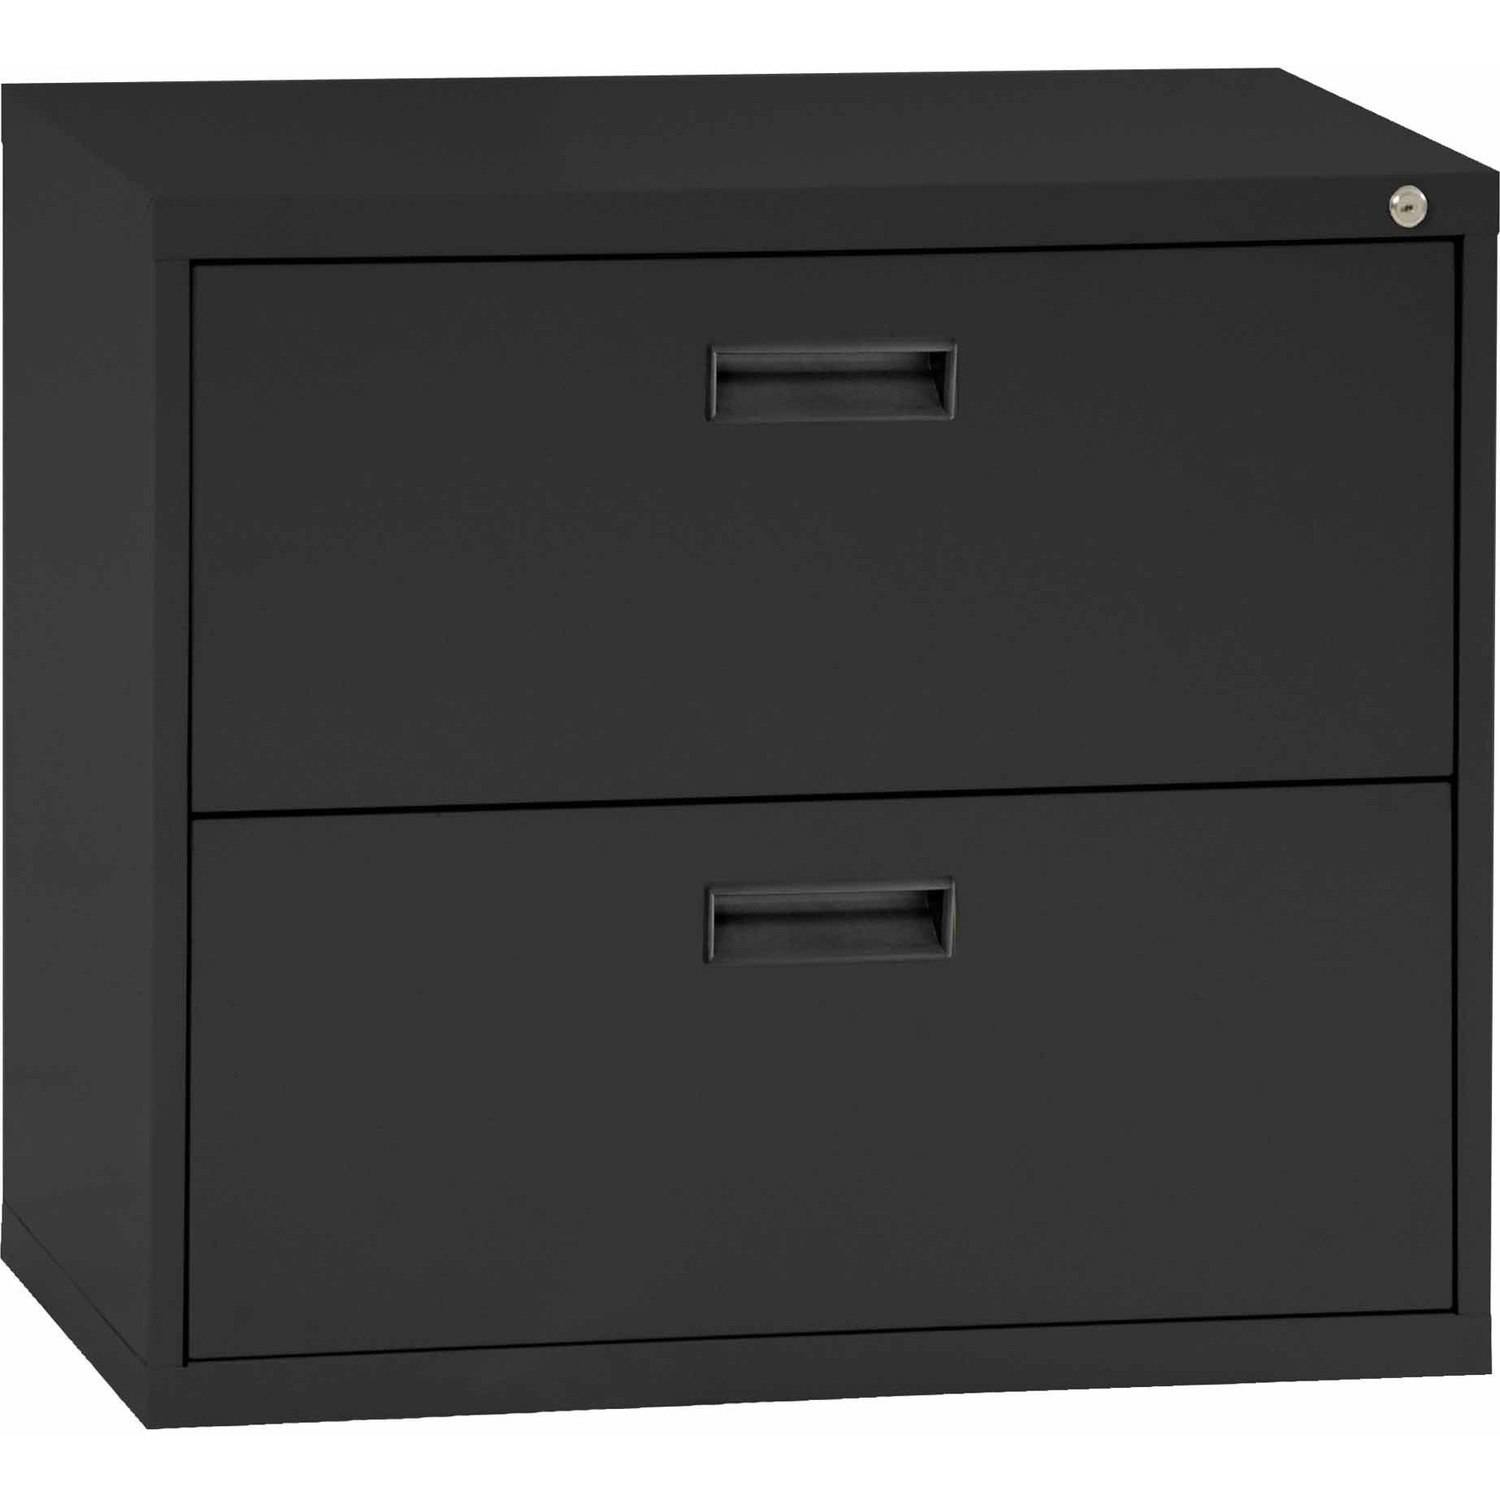 Sandusky Steel Lateral File Cabinet With Plastic Handle  Drawers El  Walmart Com